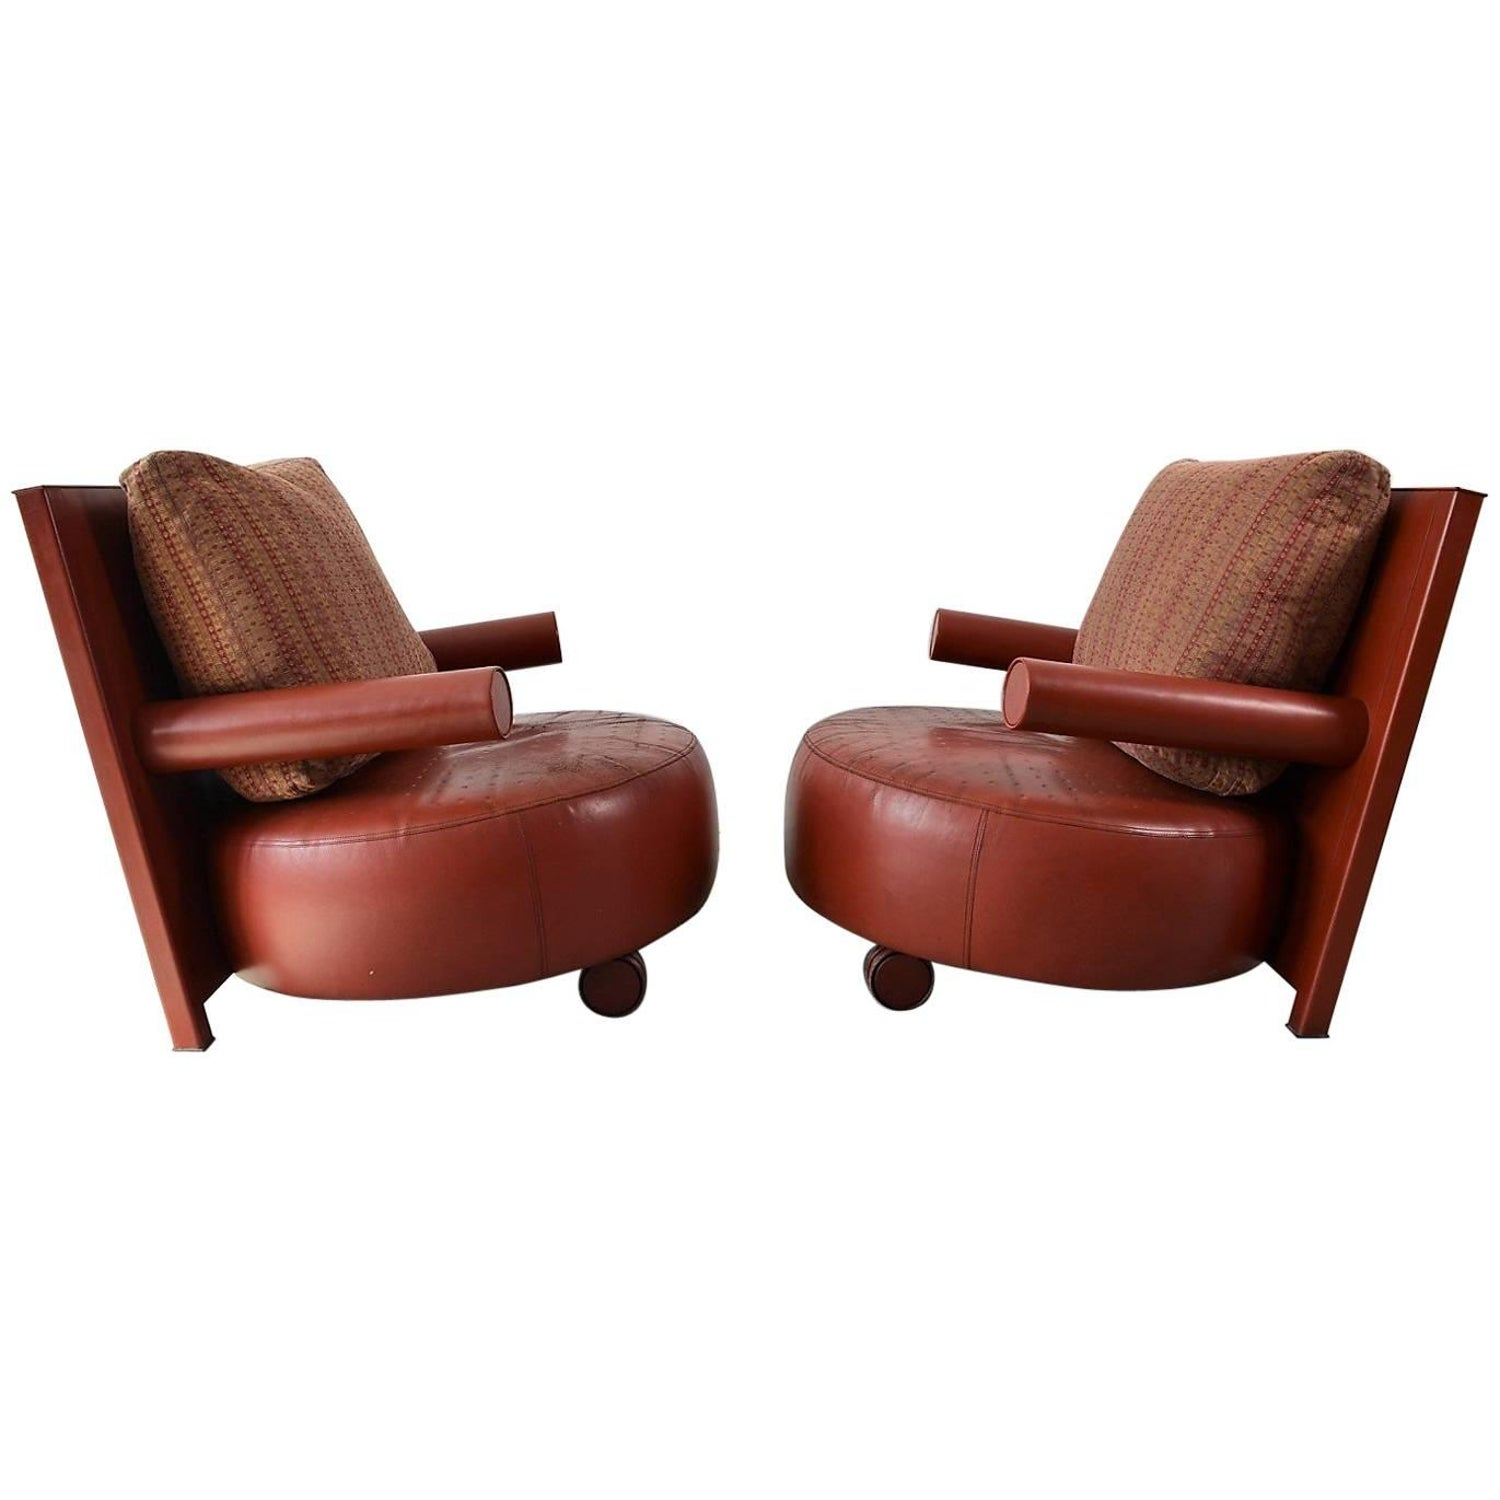 B&B Italia Furniture Chairs Sofas Tables & More 100 For Sale